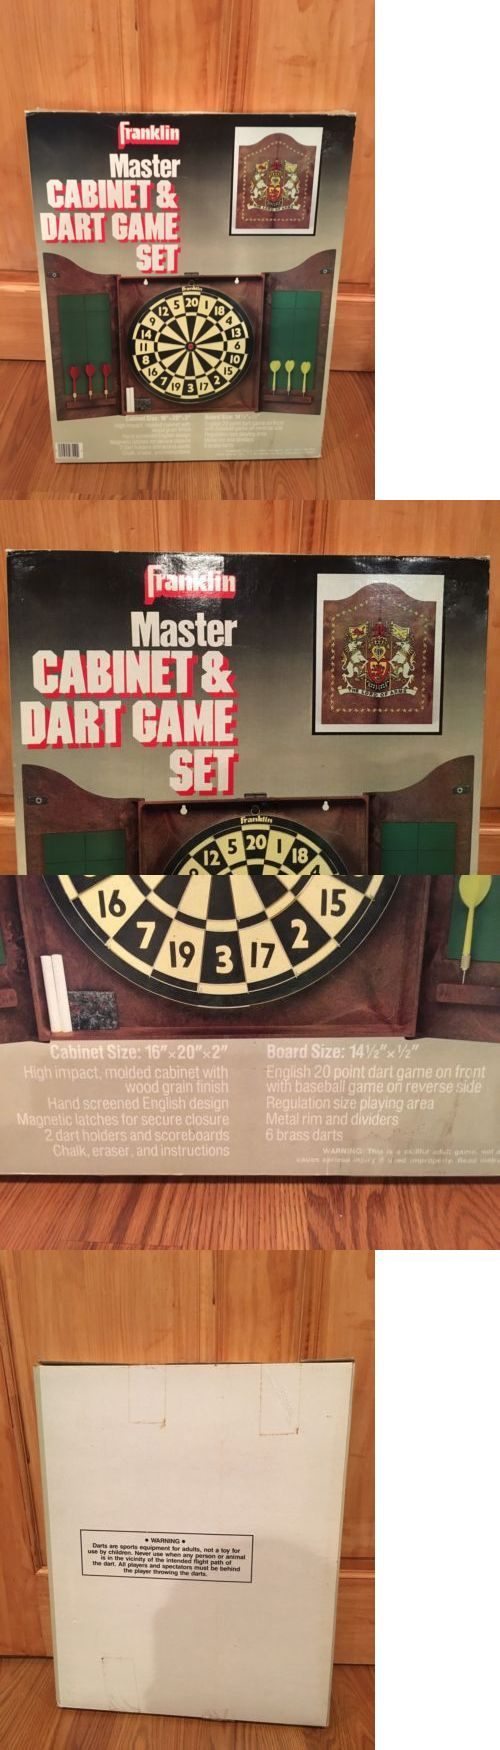 Poster Cabinet Sloanled Stripe Wire Diagram Franklin Master Dart Game Set Brand New And Factory Sealed